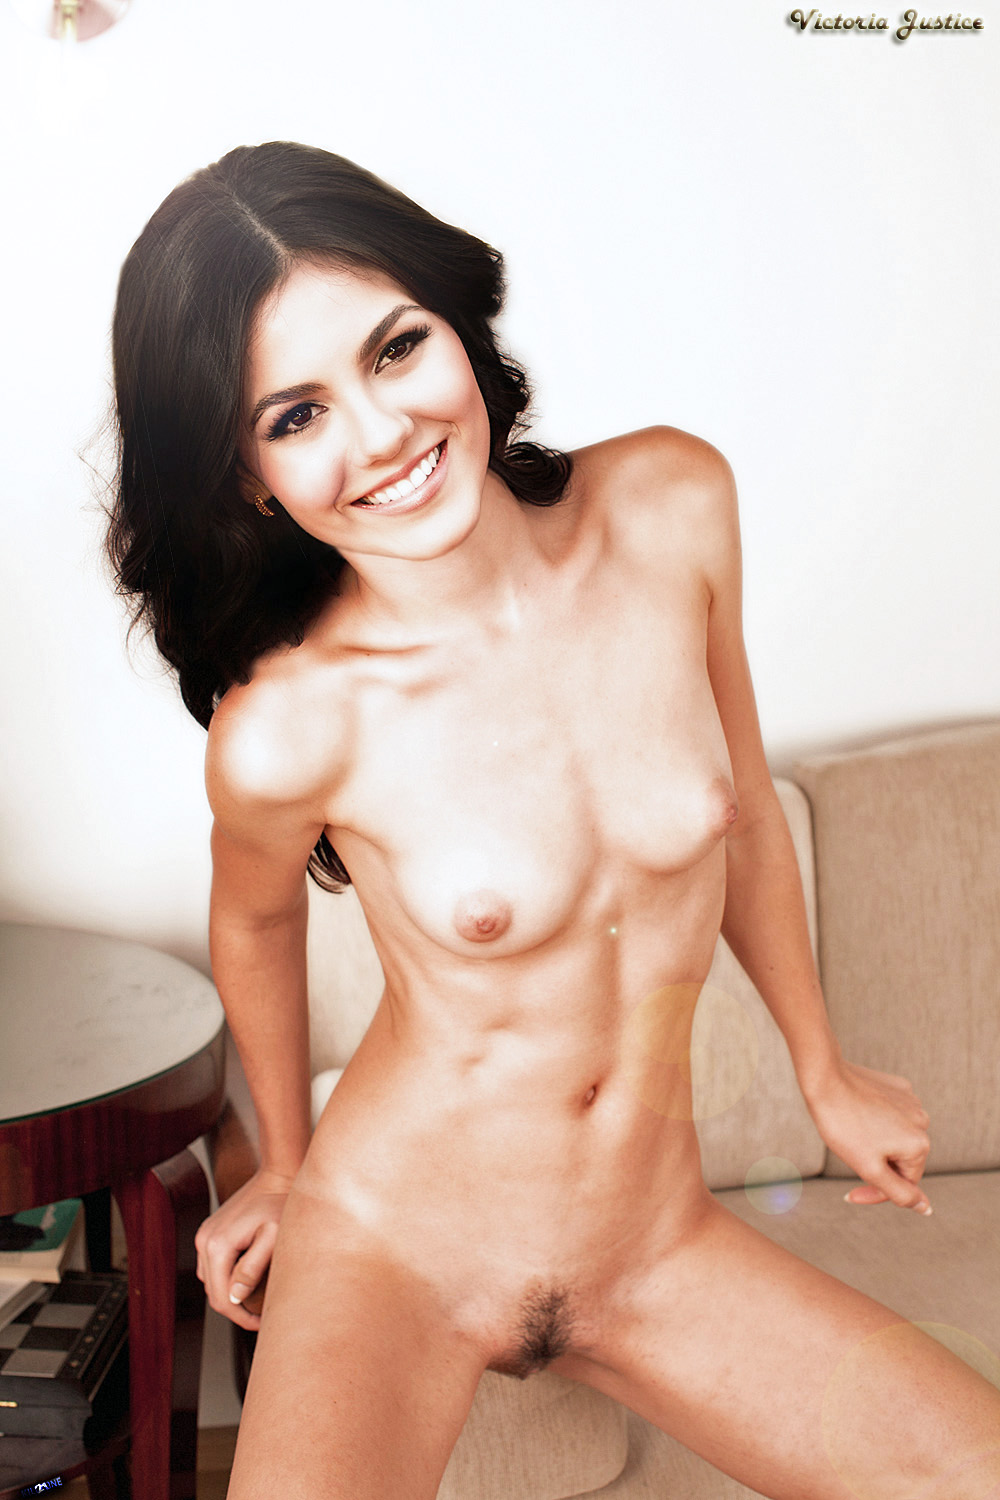 Lo Victoria Justice Nude Possing Her Boobs Tits Pussy Fake